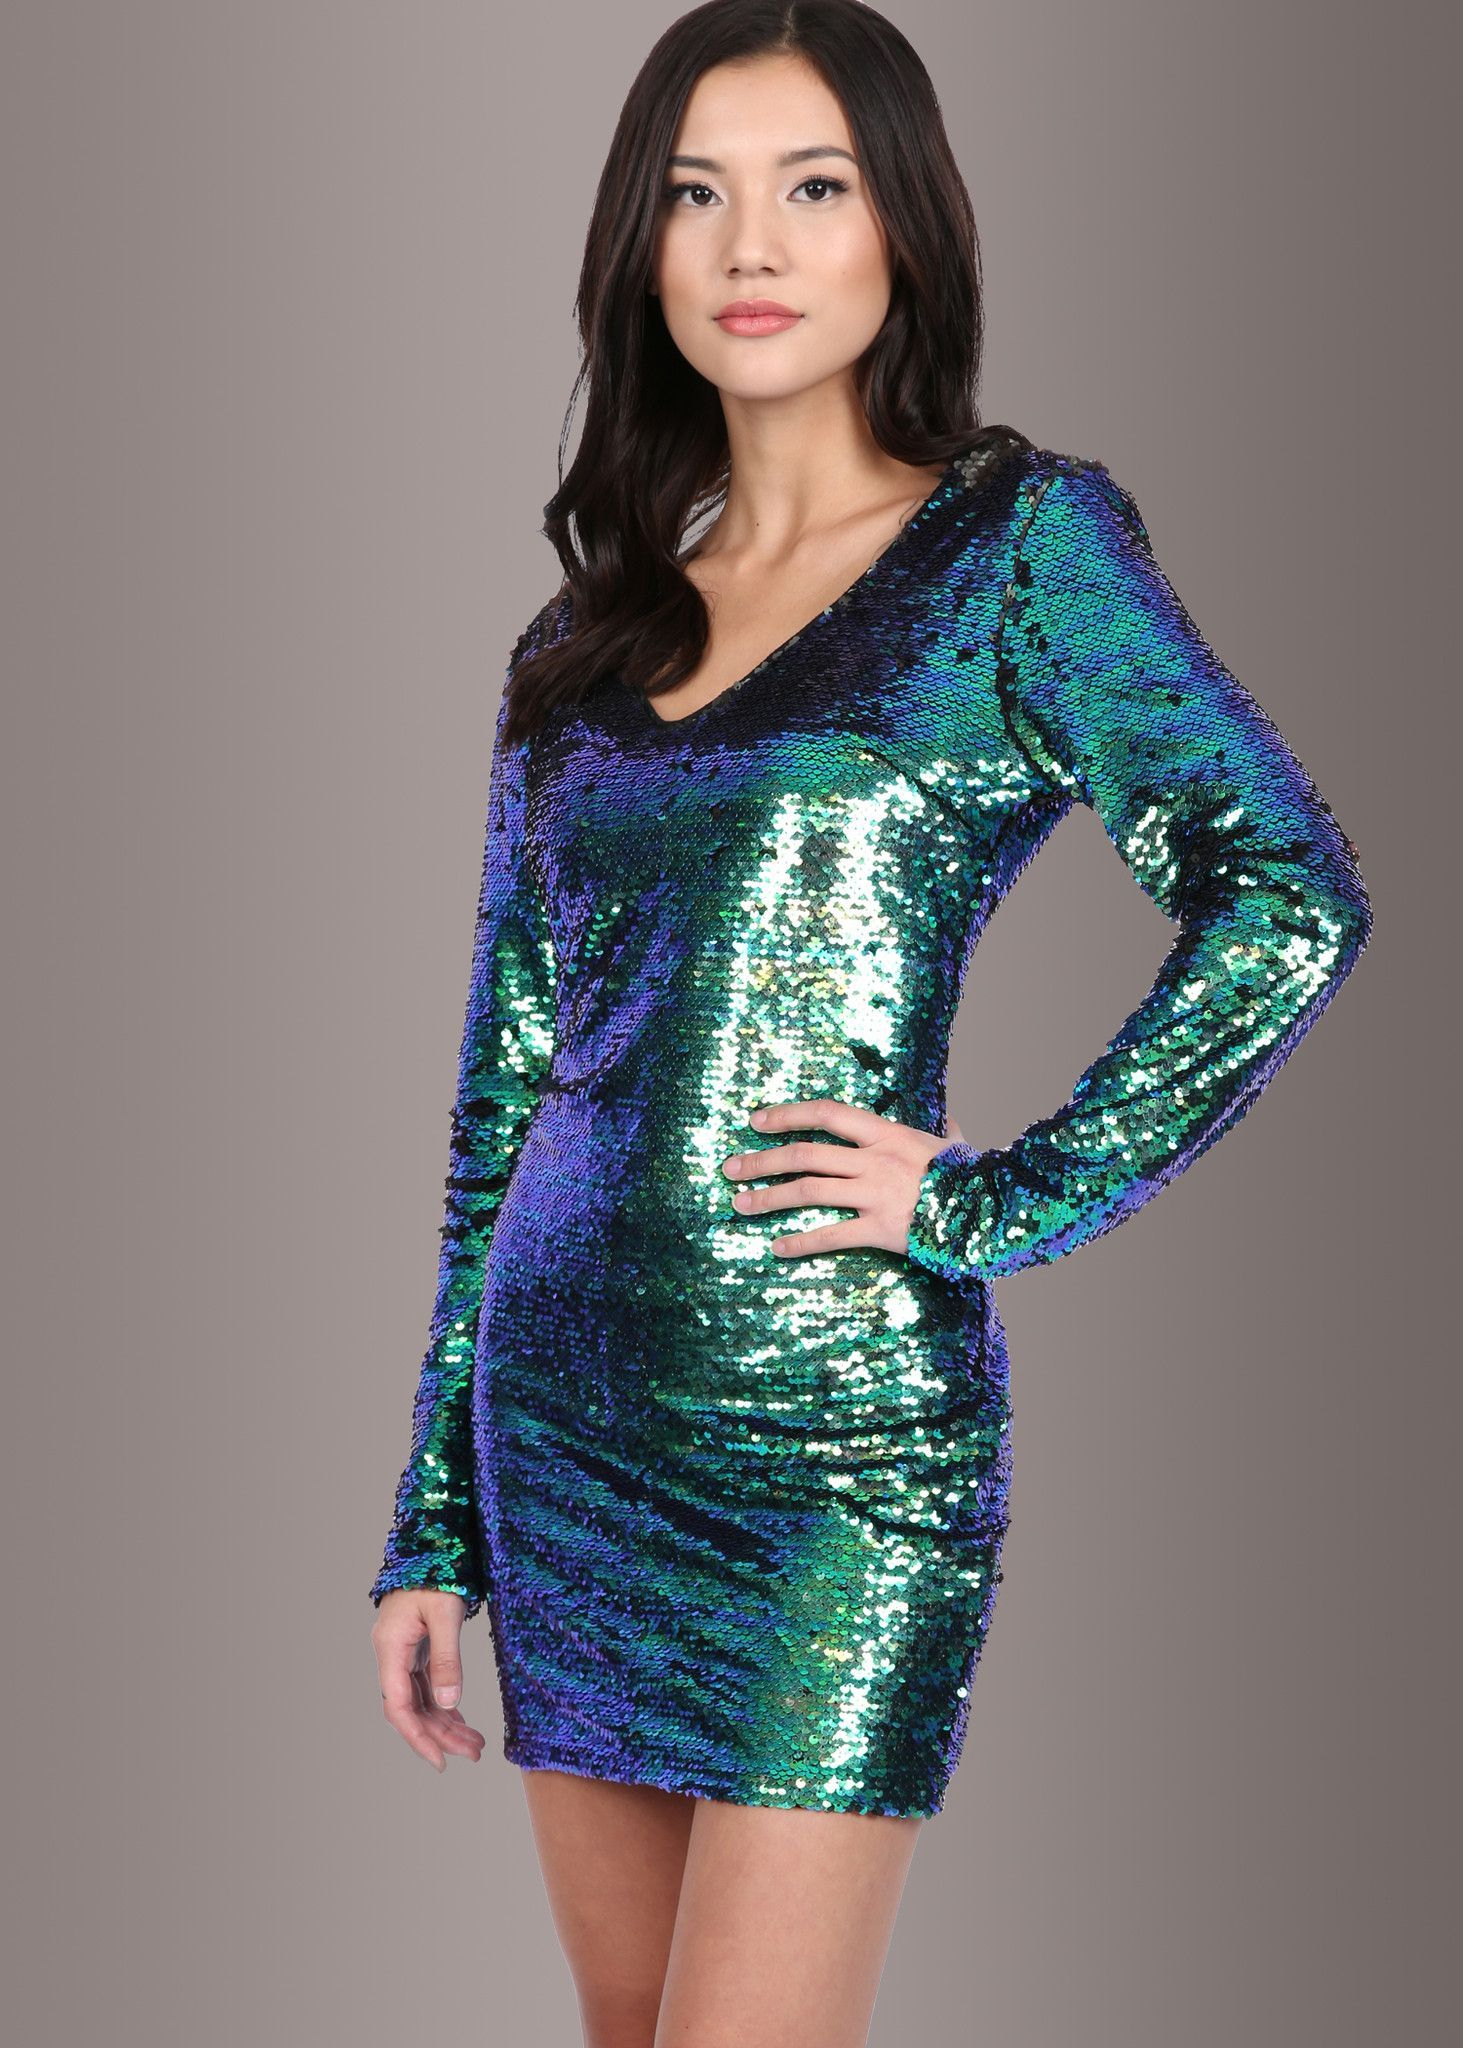 1484ca47a5 Steal the scene in this stunning sequined dress! This sparkling beauty  showcases blue and green mermaid colored sequins allover.